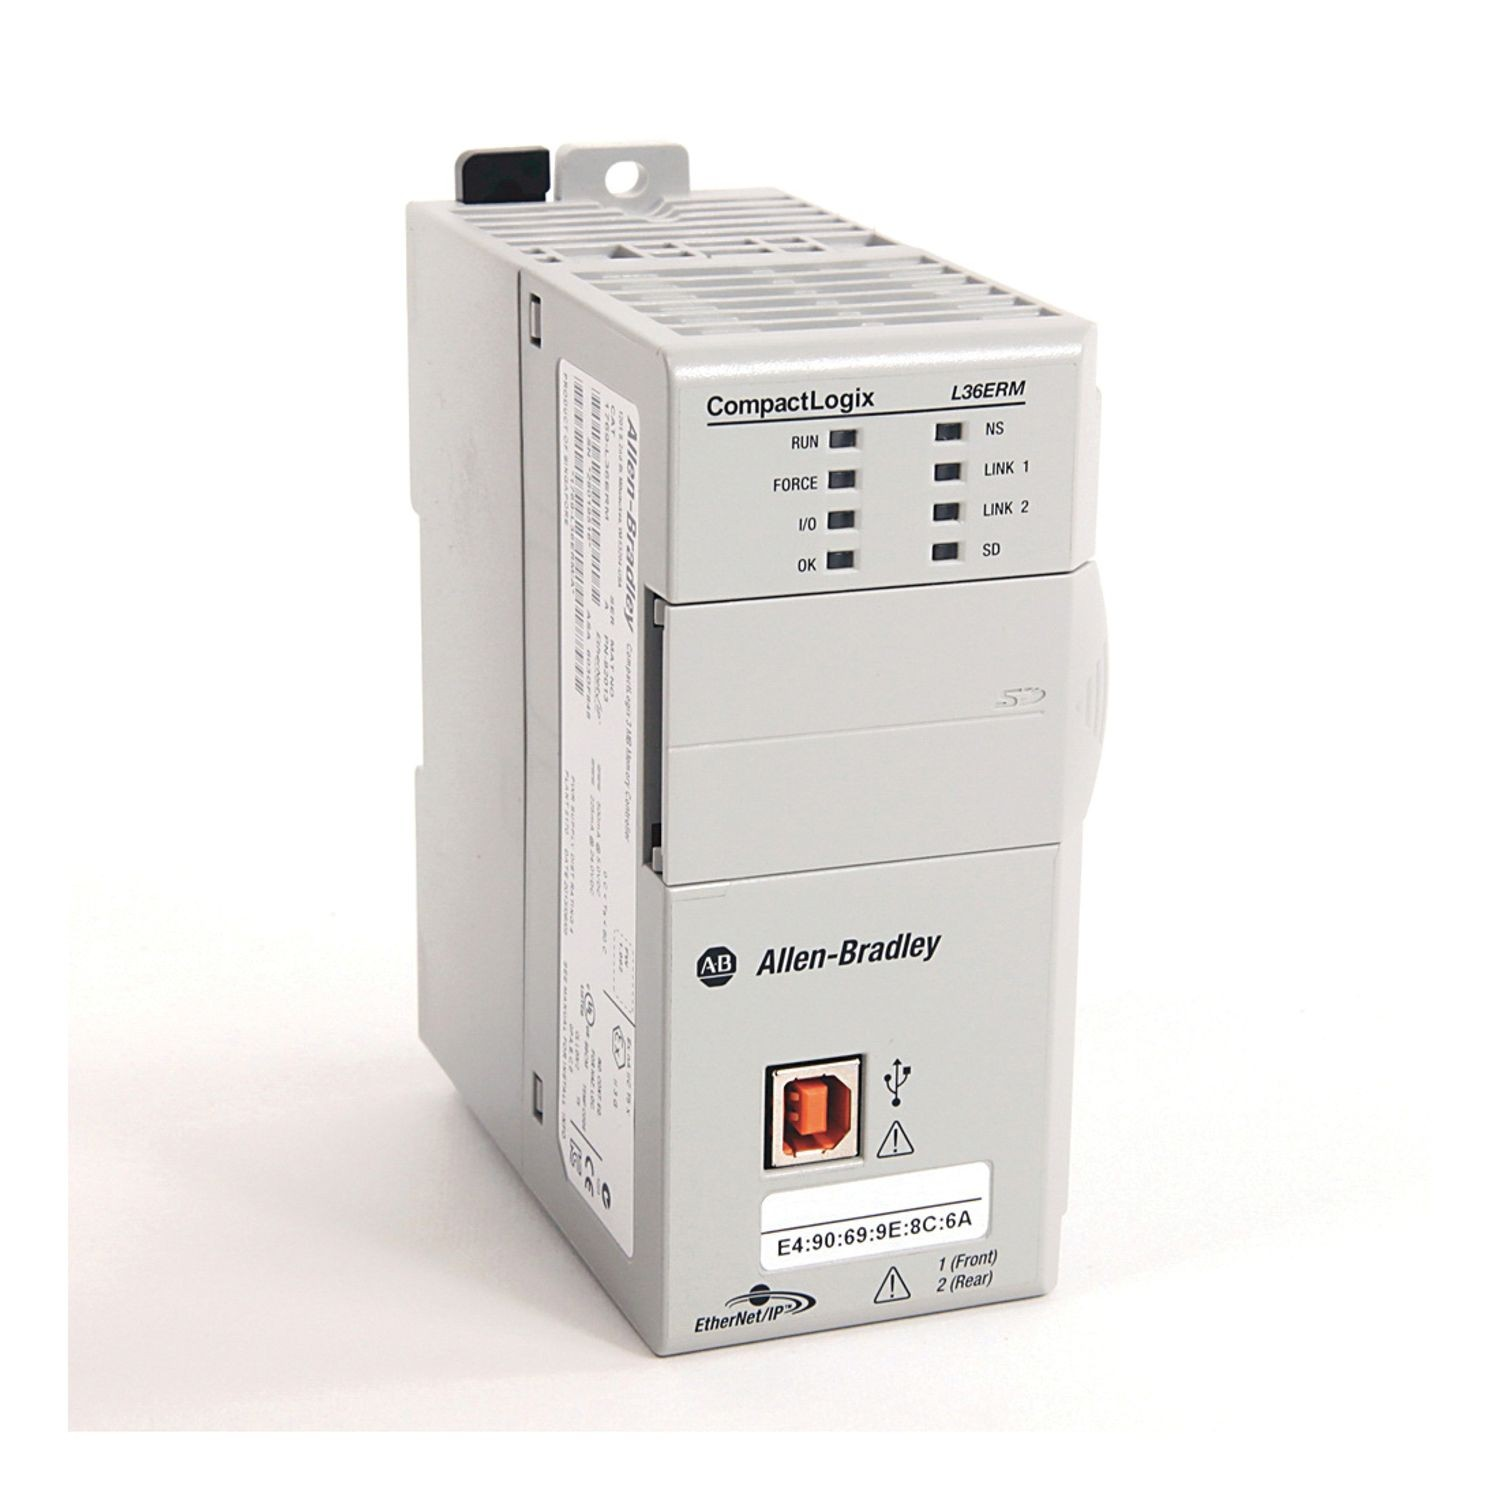 Compactlogix 5370 L3 Controllers Dual Ethernet W Dlr Capability Axis 2gb 48 Ip Nodes 16 Cip Motion With Kinematics Function Are Shipped 1gb Sd Card And Can Support Up To